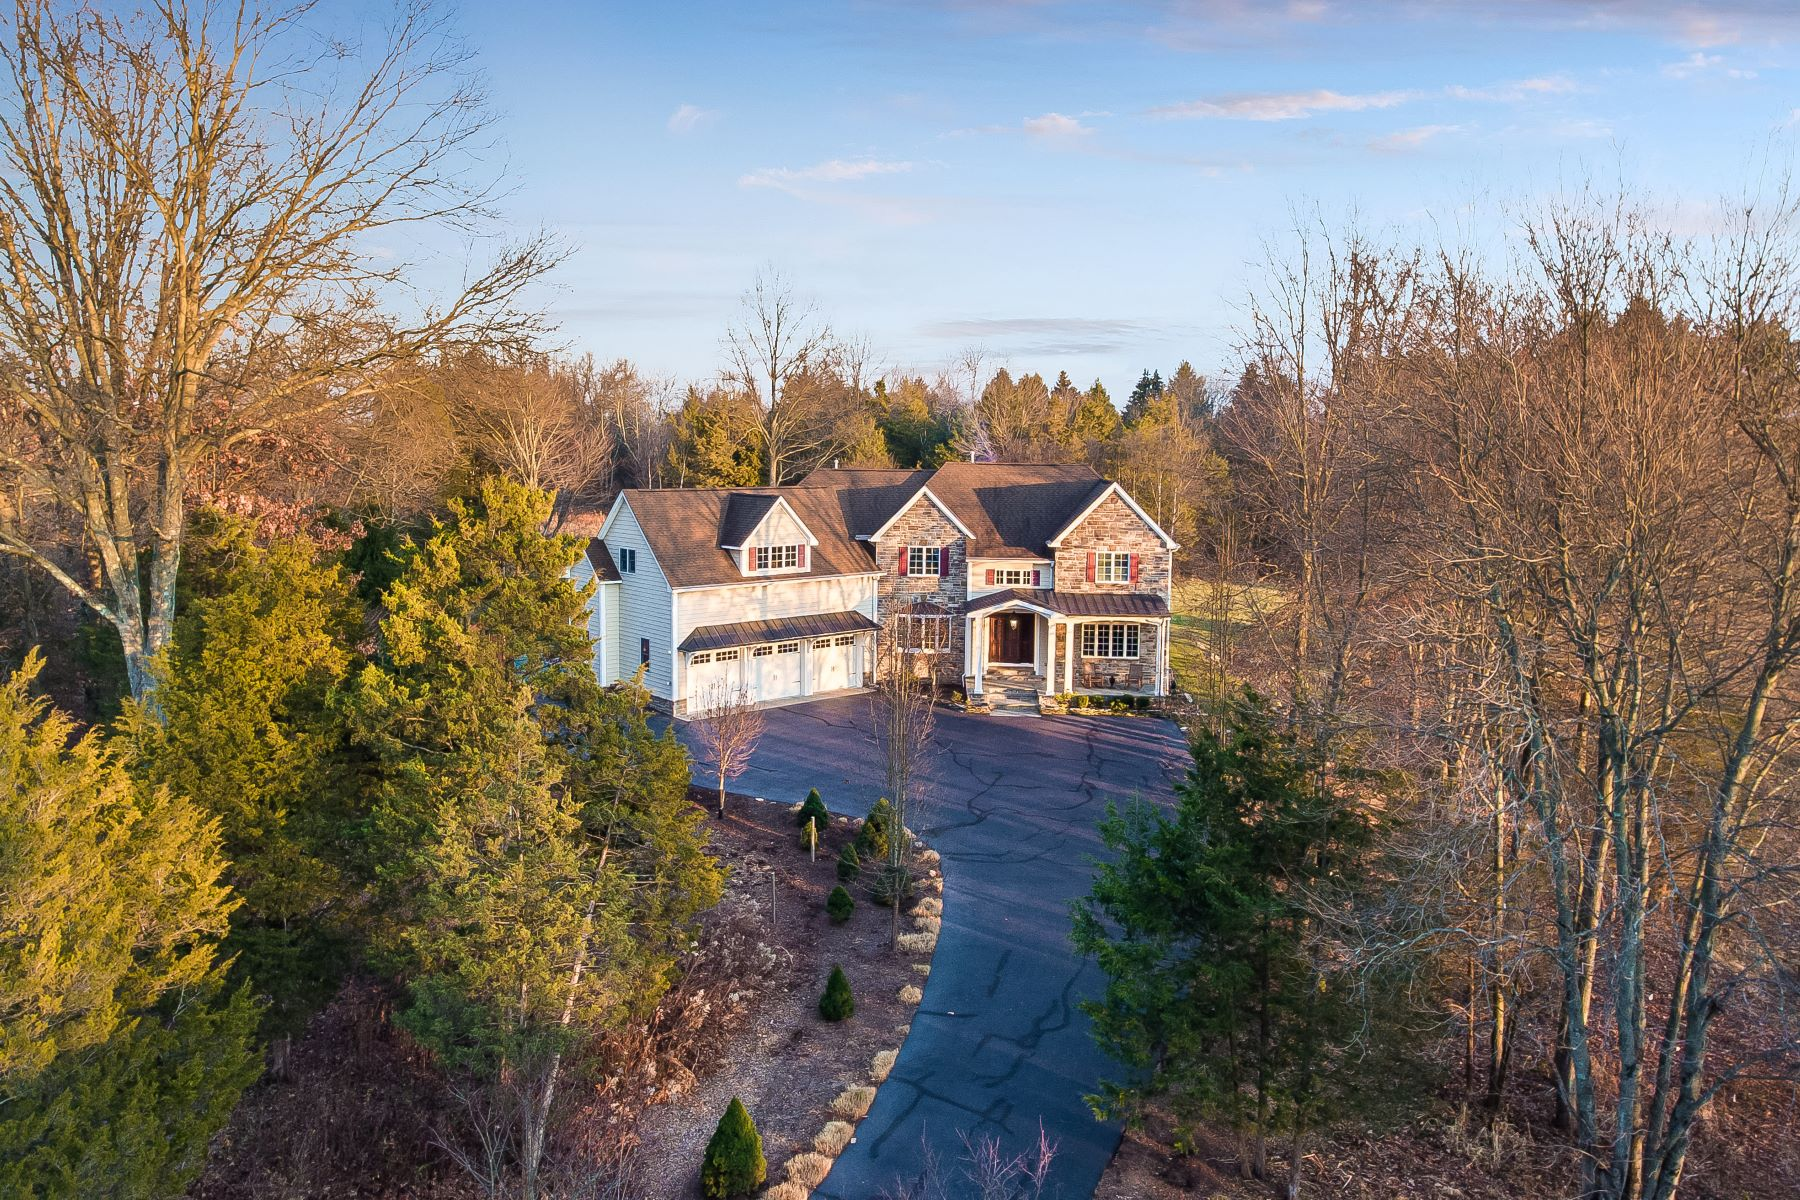 Single Family Home for Sale at Private and Spacious Colonial 451 Somerville Road, Basking Ridge, New Jersey 07920 United States